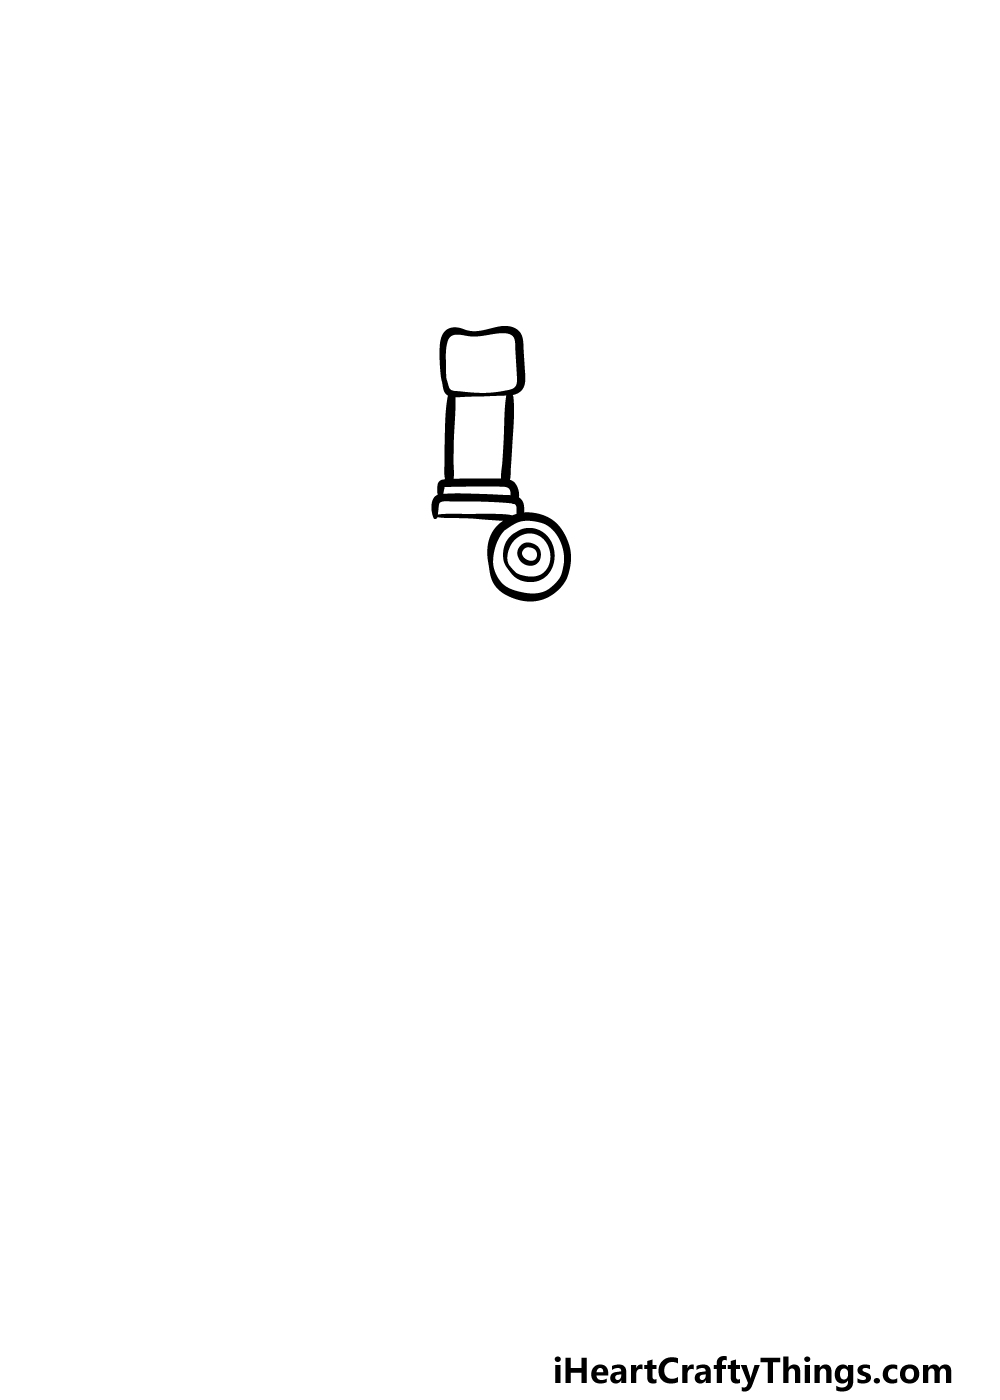 how to draw a microscope step 1